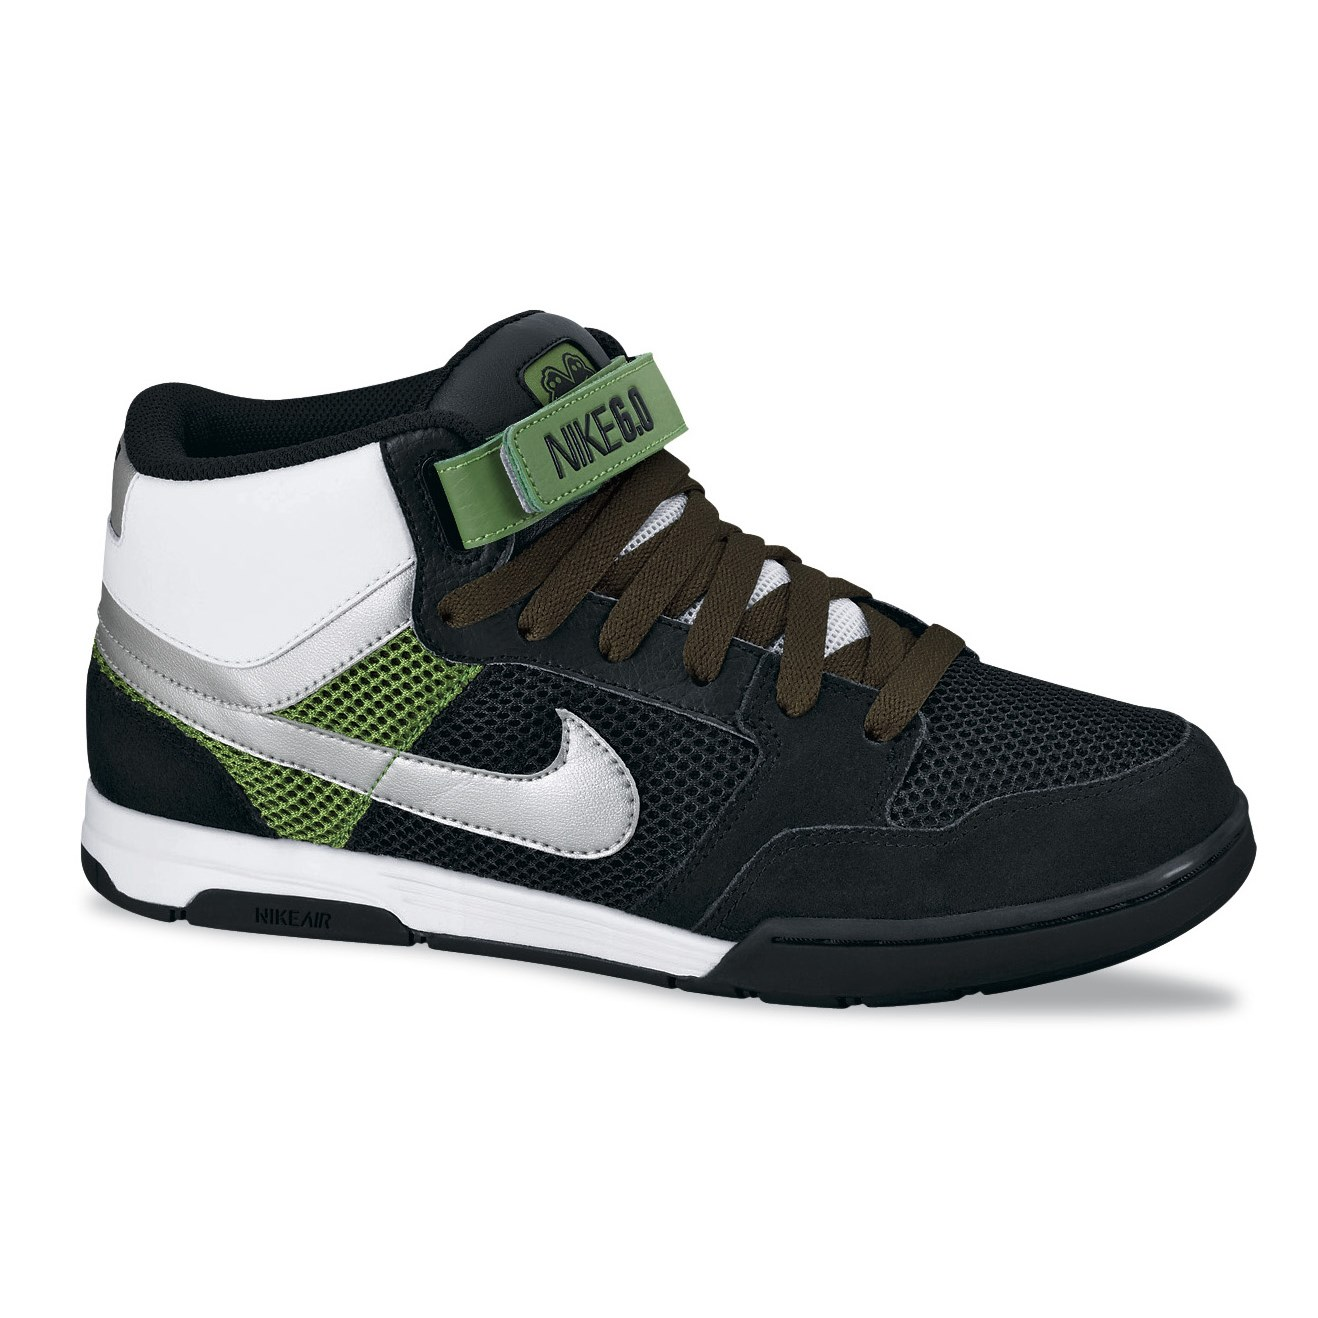 new concept 8b951 3f60e Nike 6.0 Air Mogan Mid Wake Shoes 2009  evo